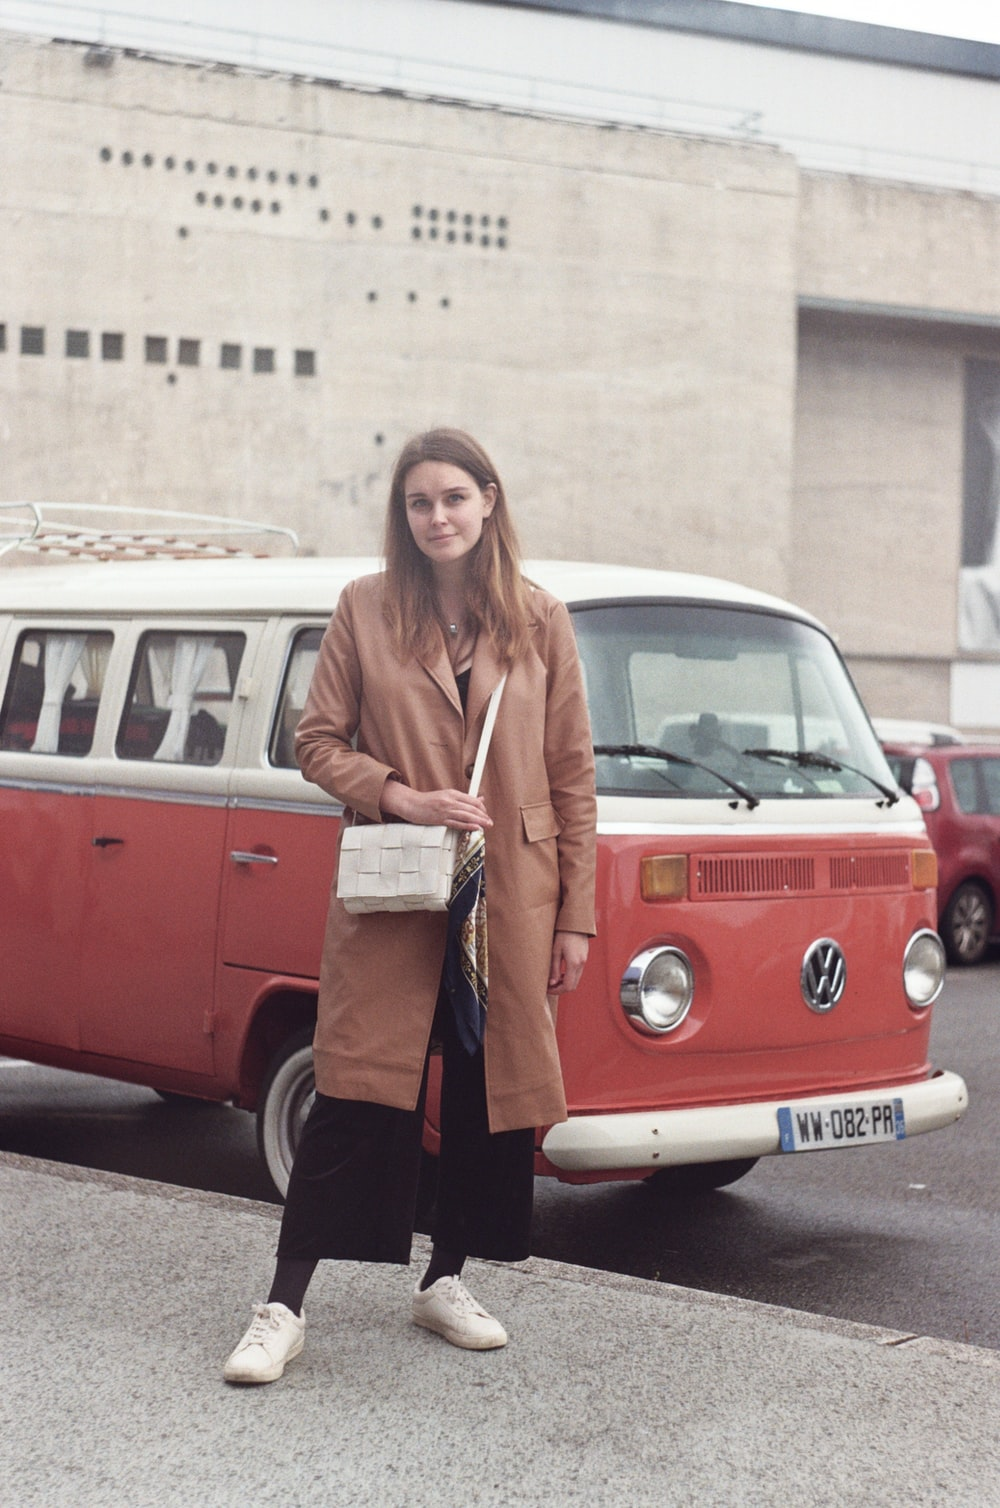 woman in brown coat standing beside red and white volkswagen t-1